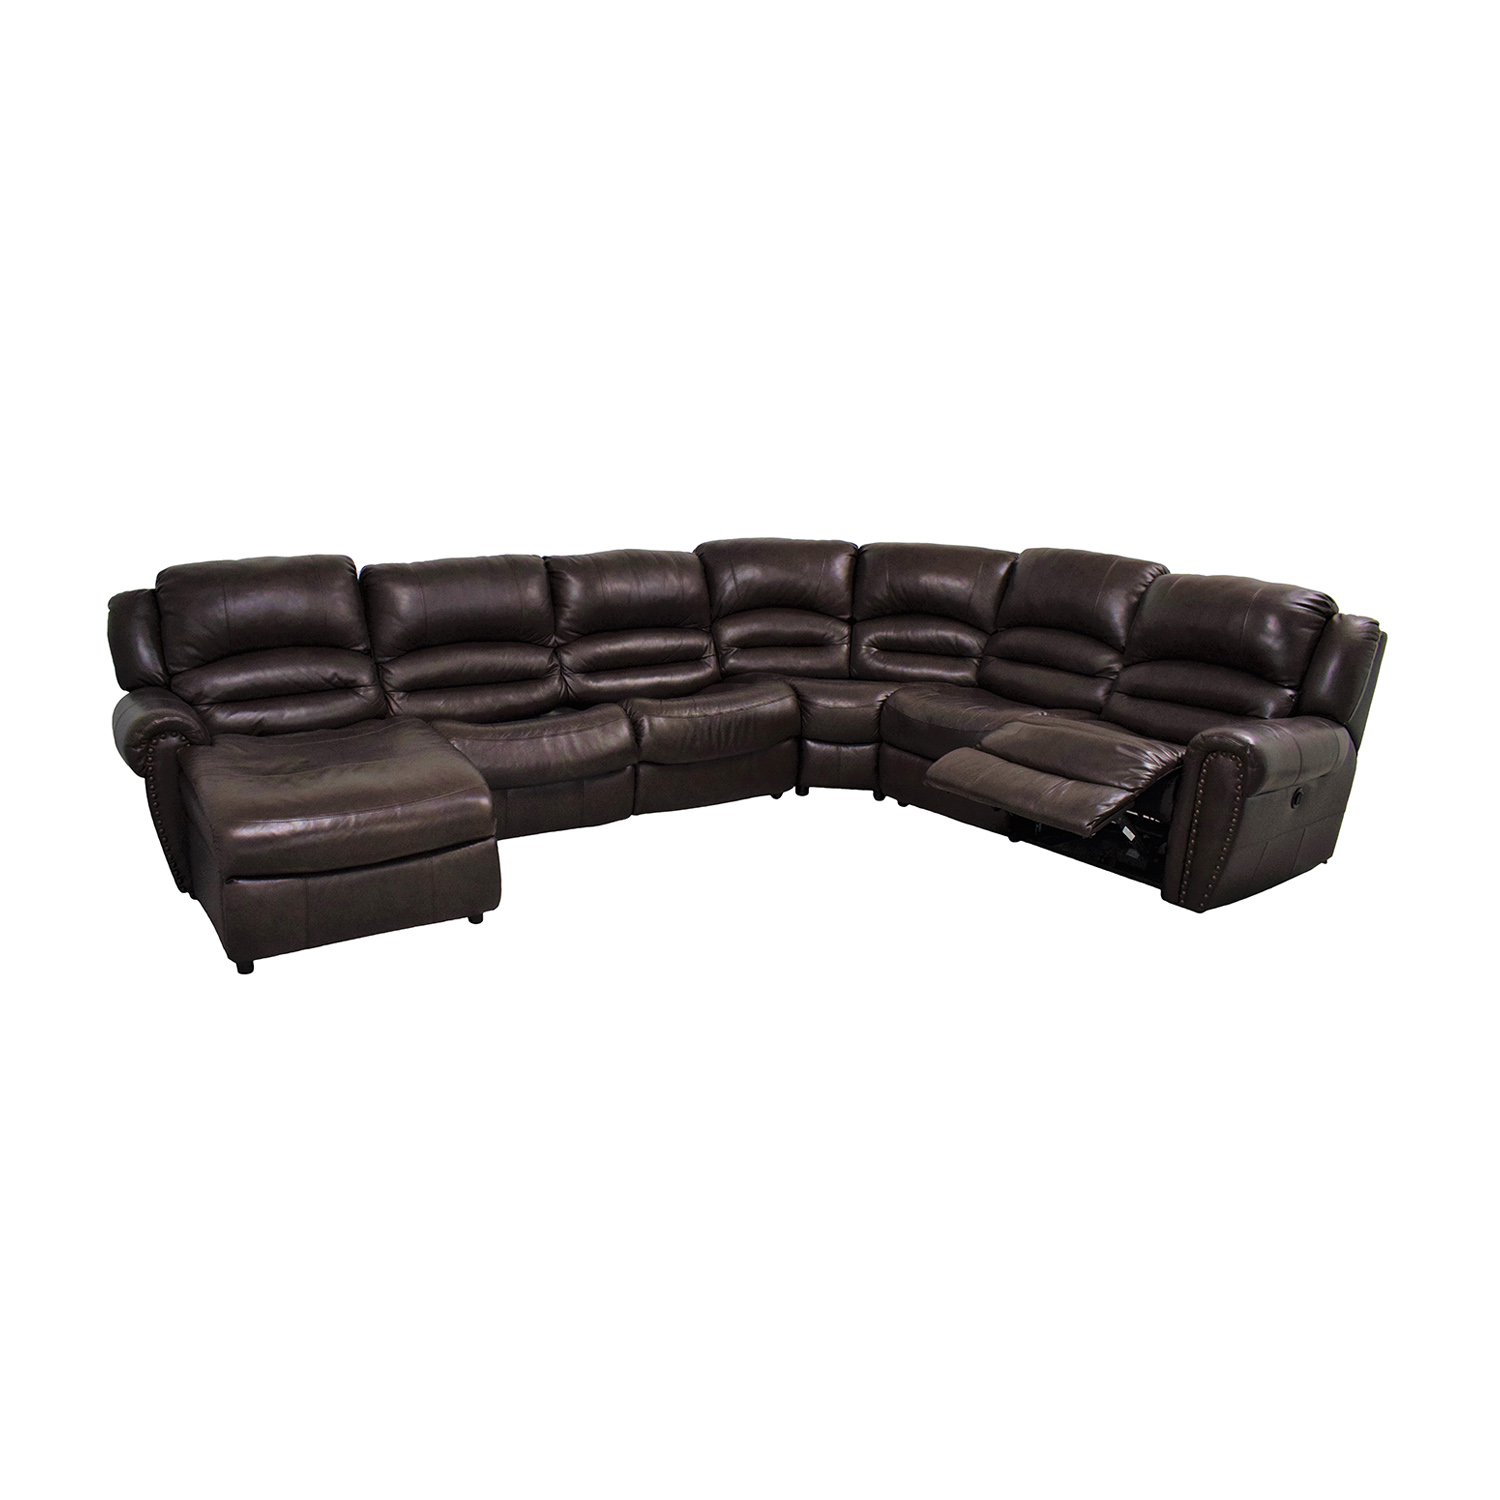 buy Raymour & Flanigan Chaise Recliner Sectional Sleeper Sofa Raymour & Flanigan